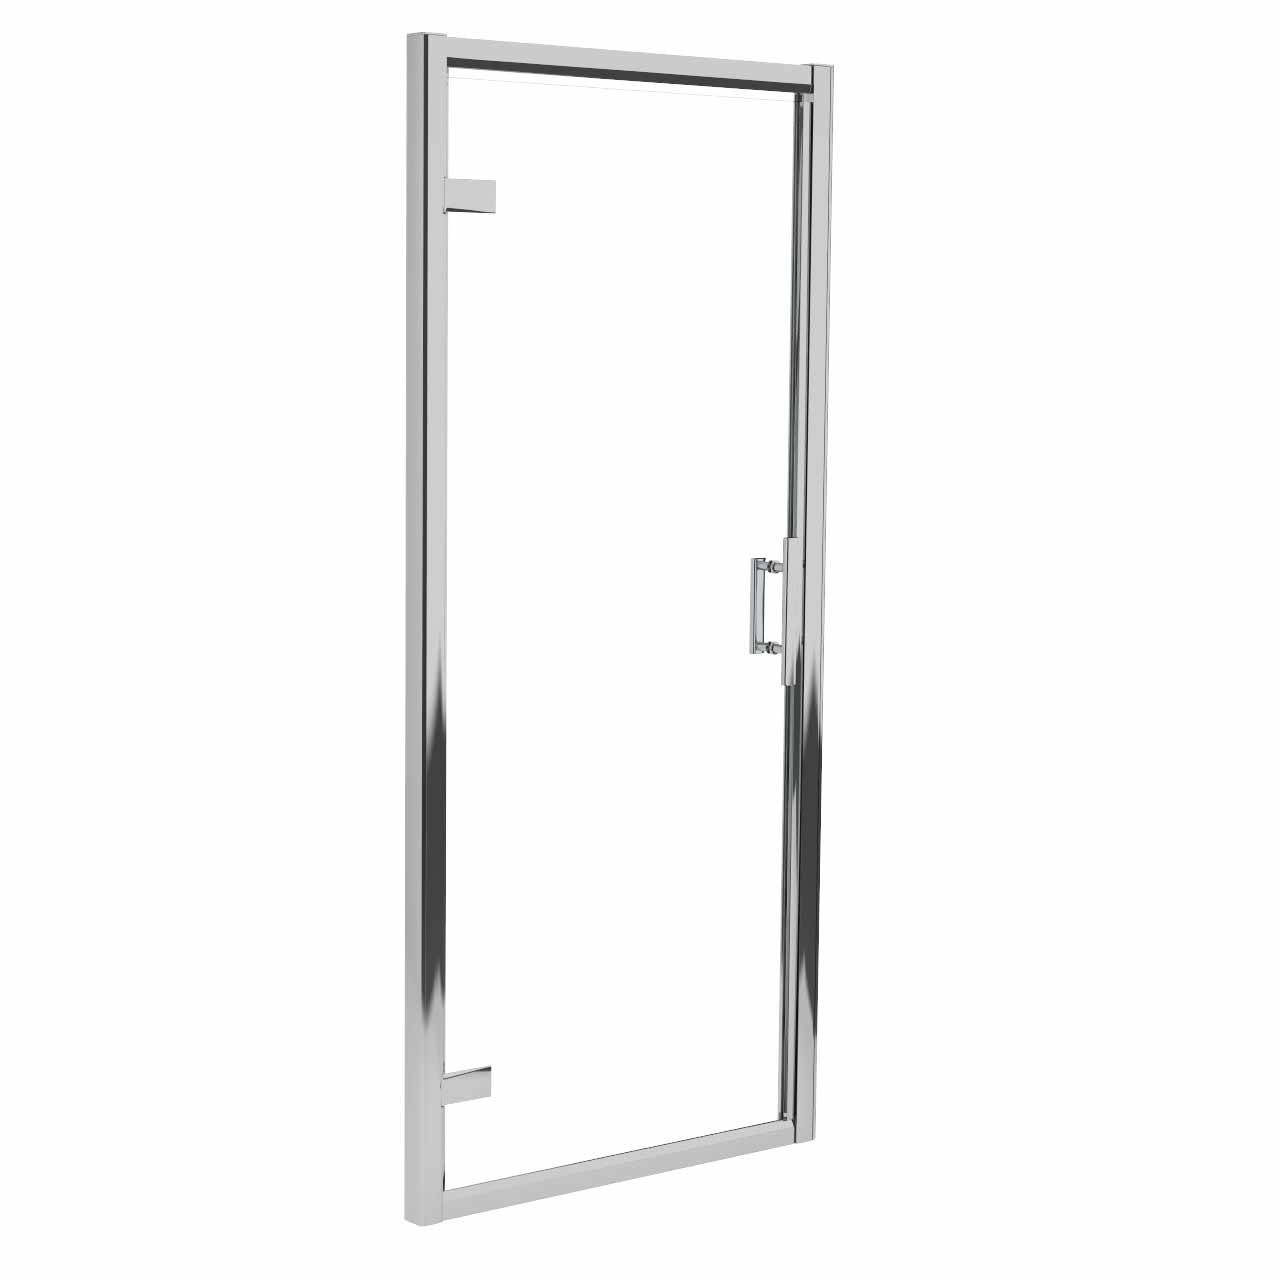 Series 8 Plus 900 x 900 Hinged Door Enclosure